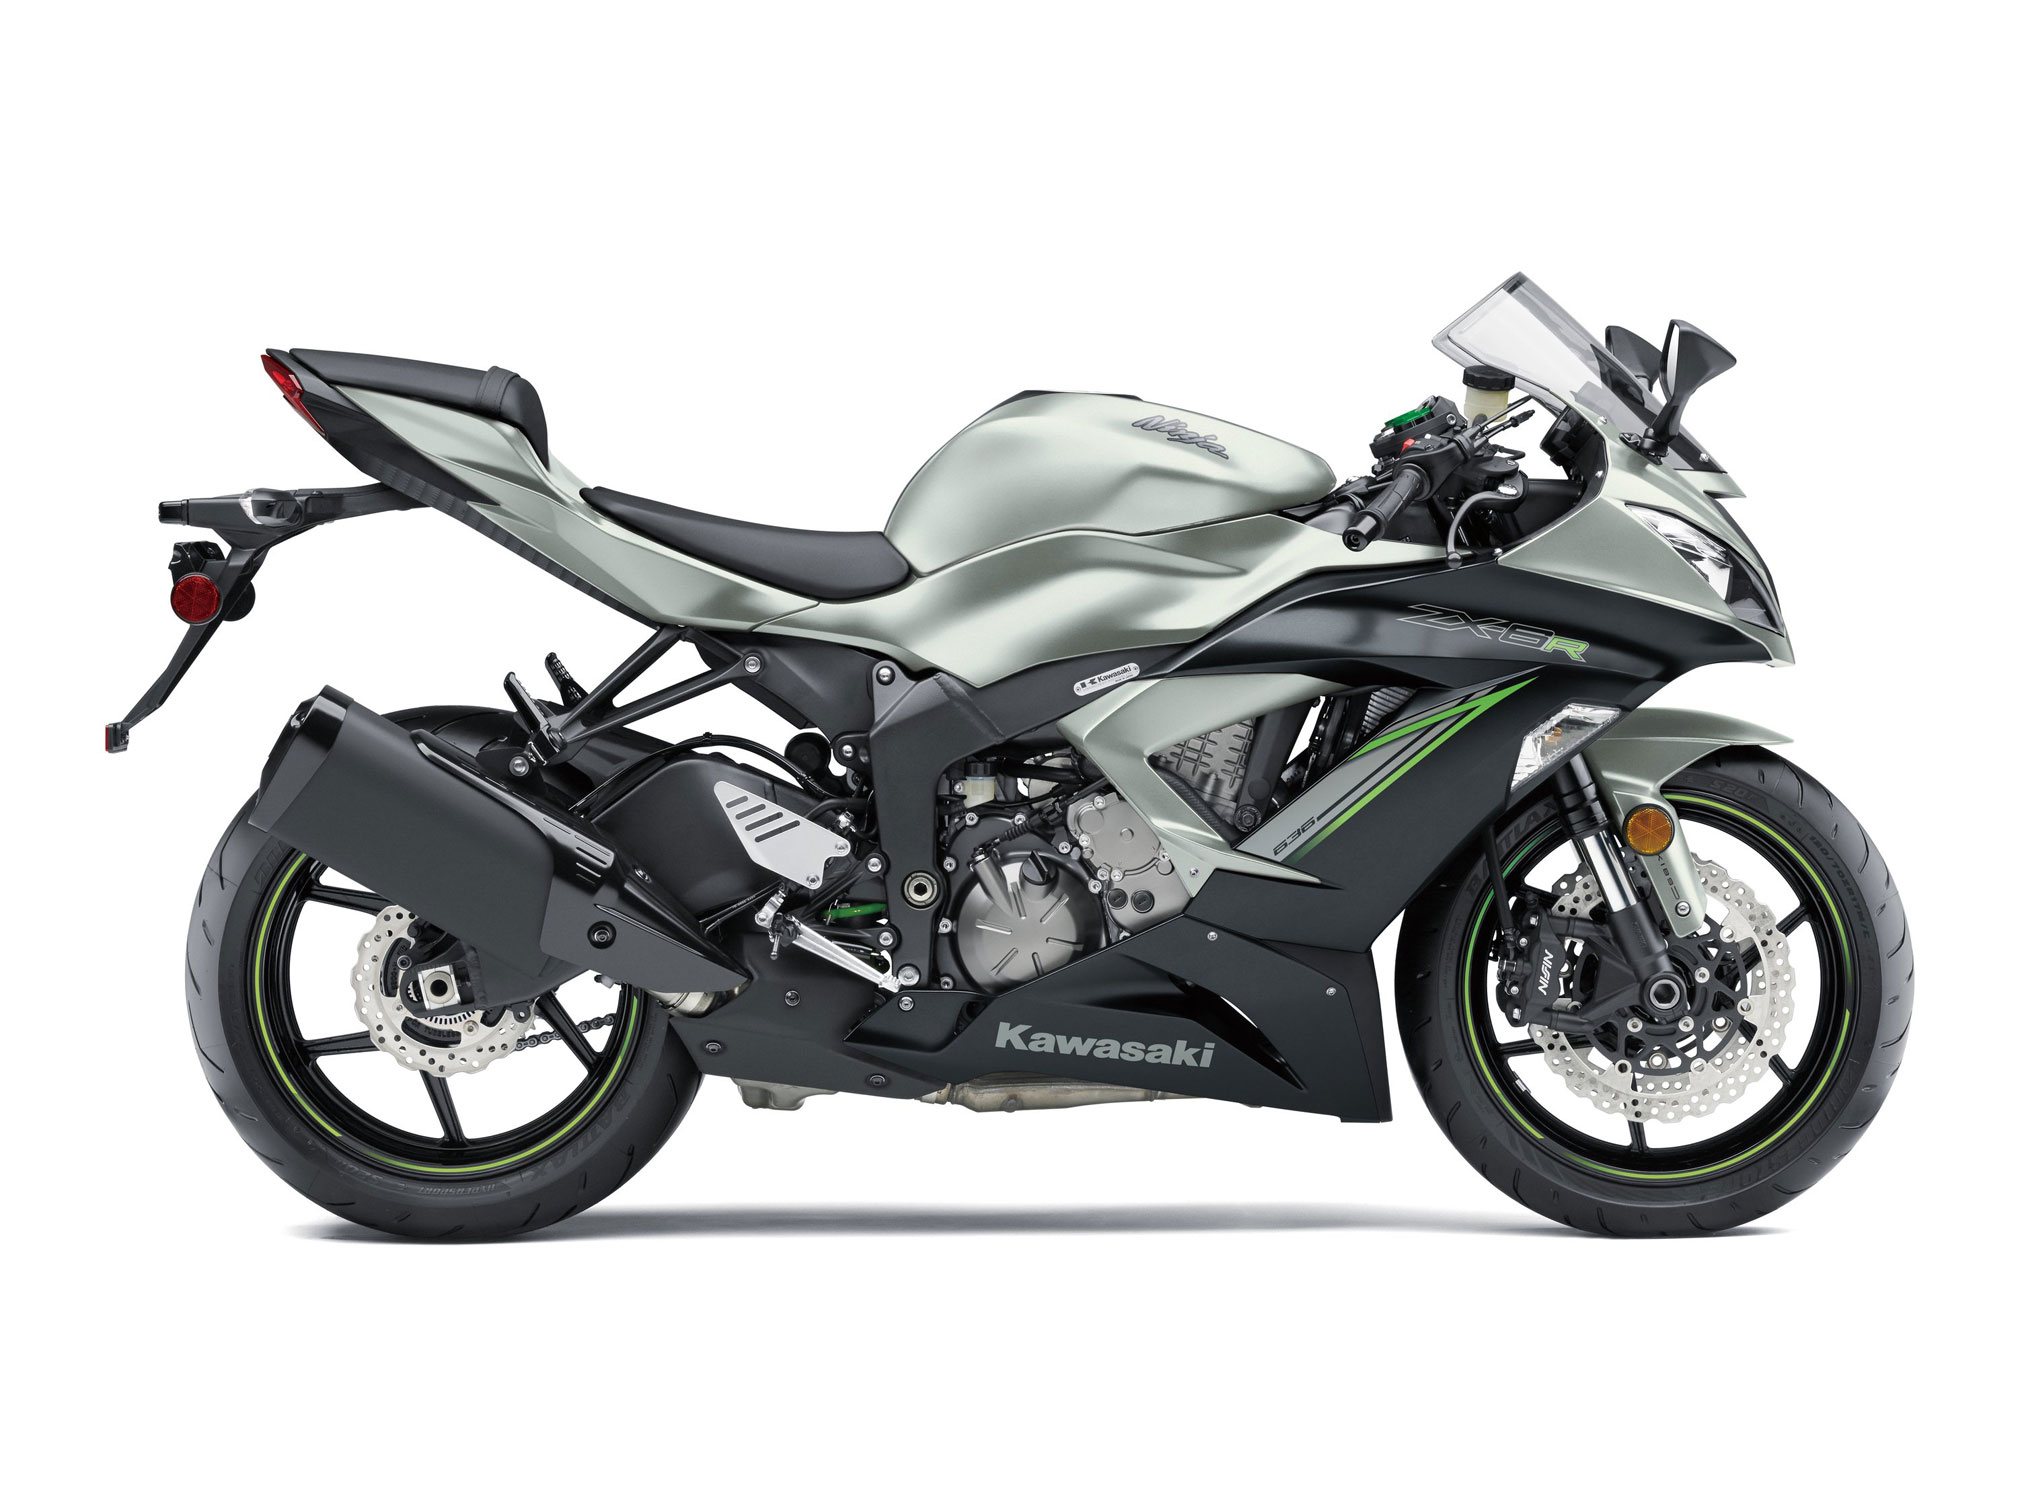 2018 kawasaki ninja zx 6r review totalmotorcycle. Black Bedroom Furniture Sets. Home Design Ideas